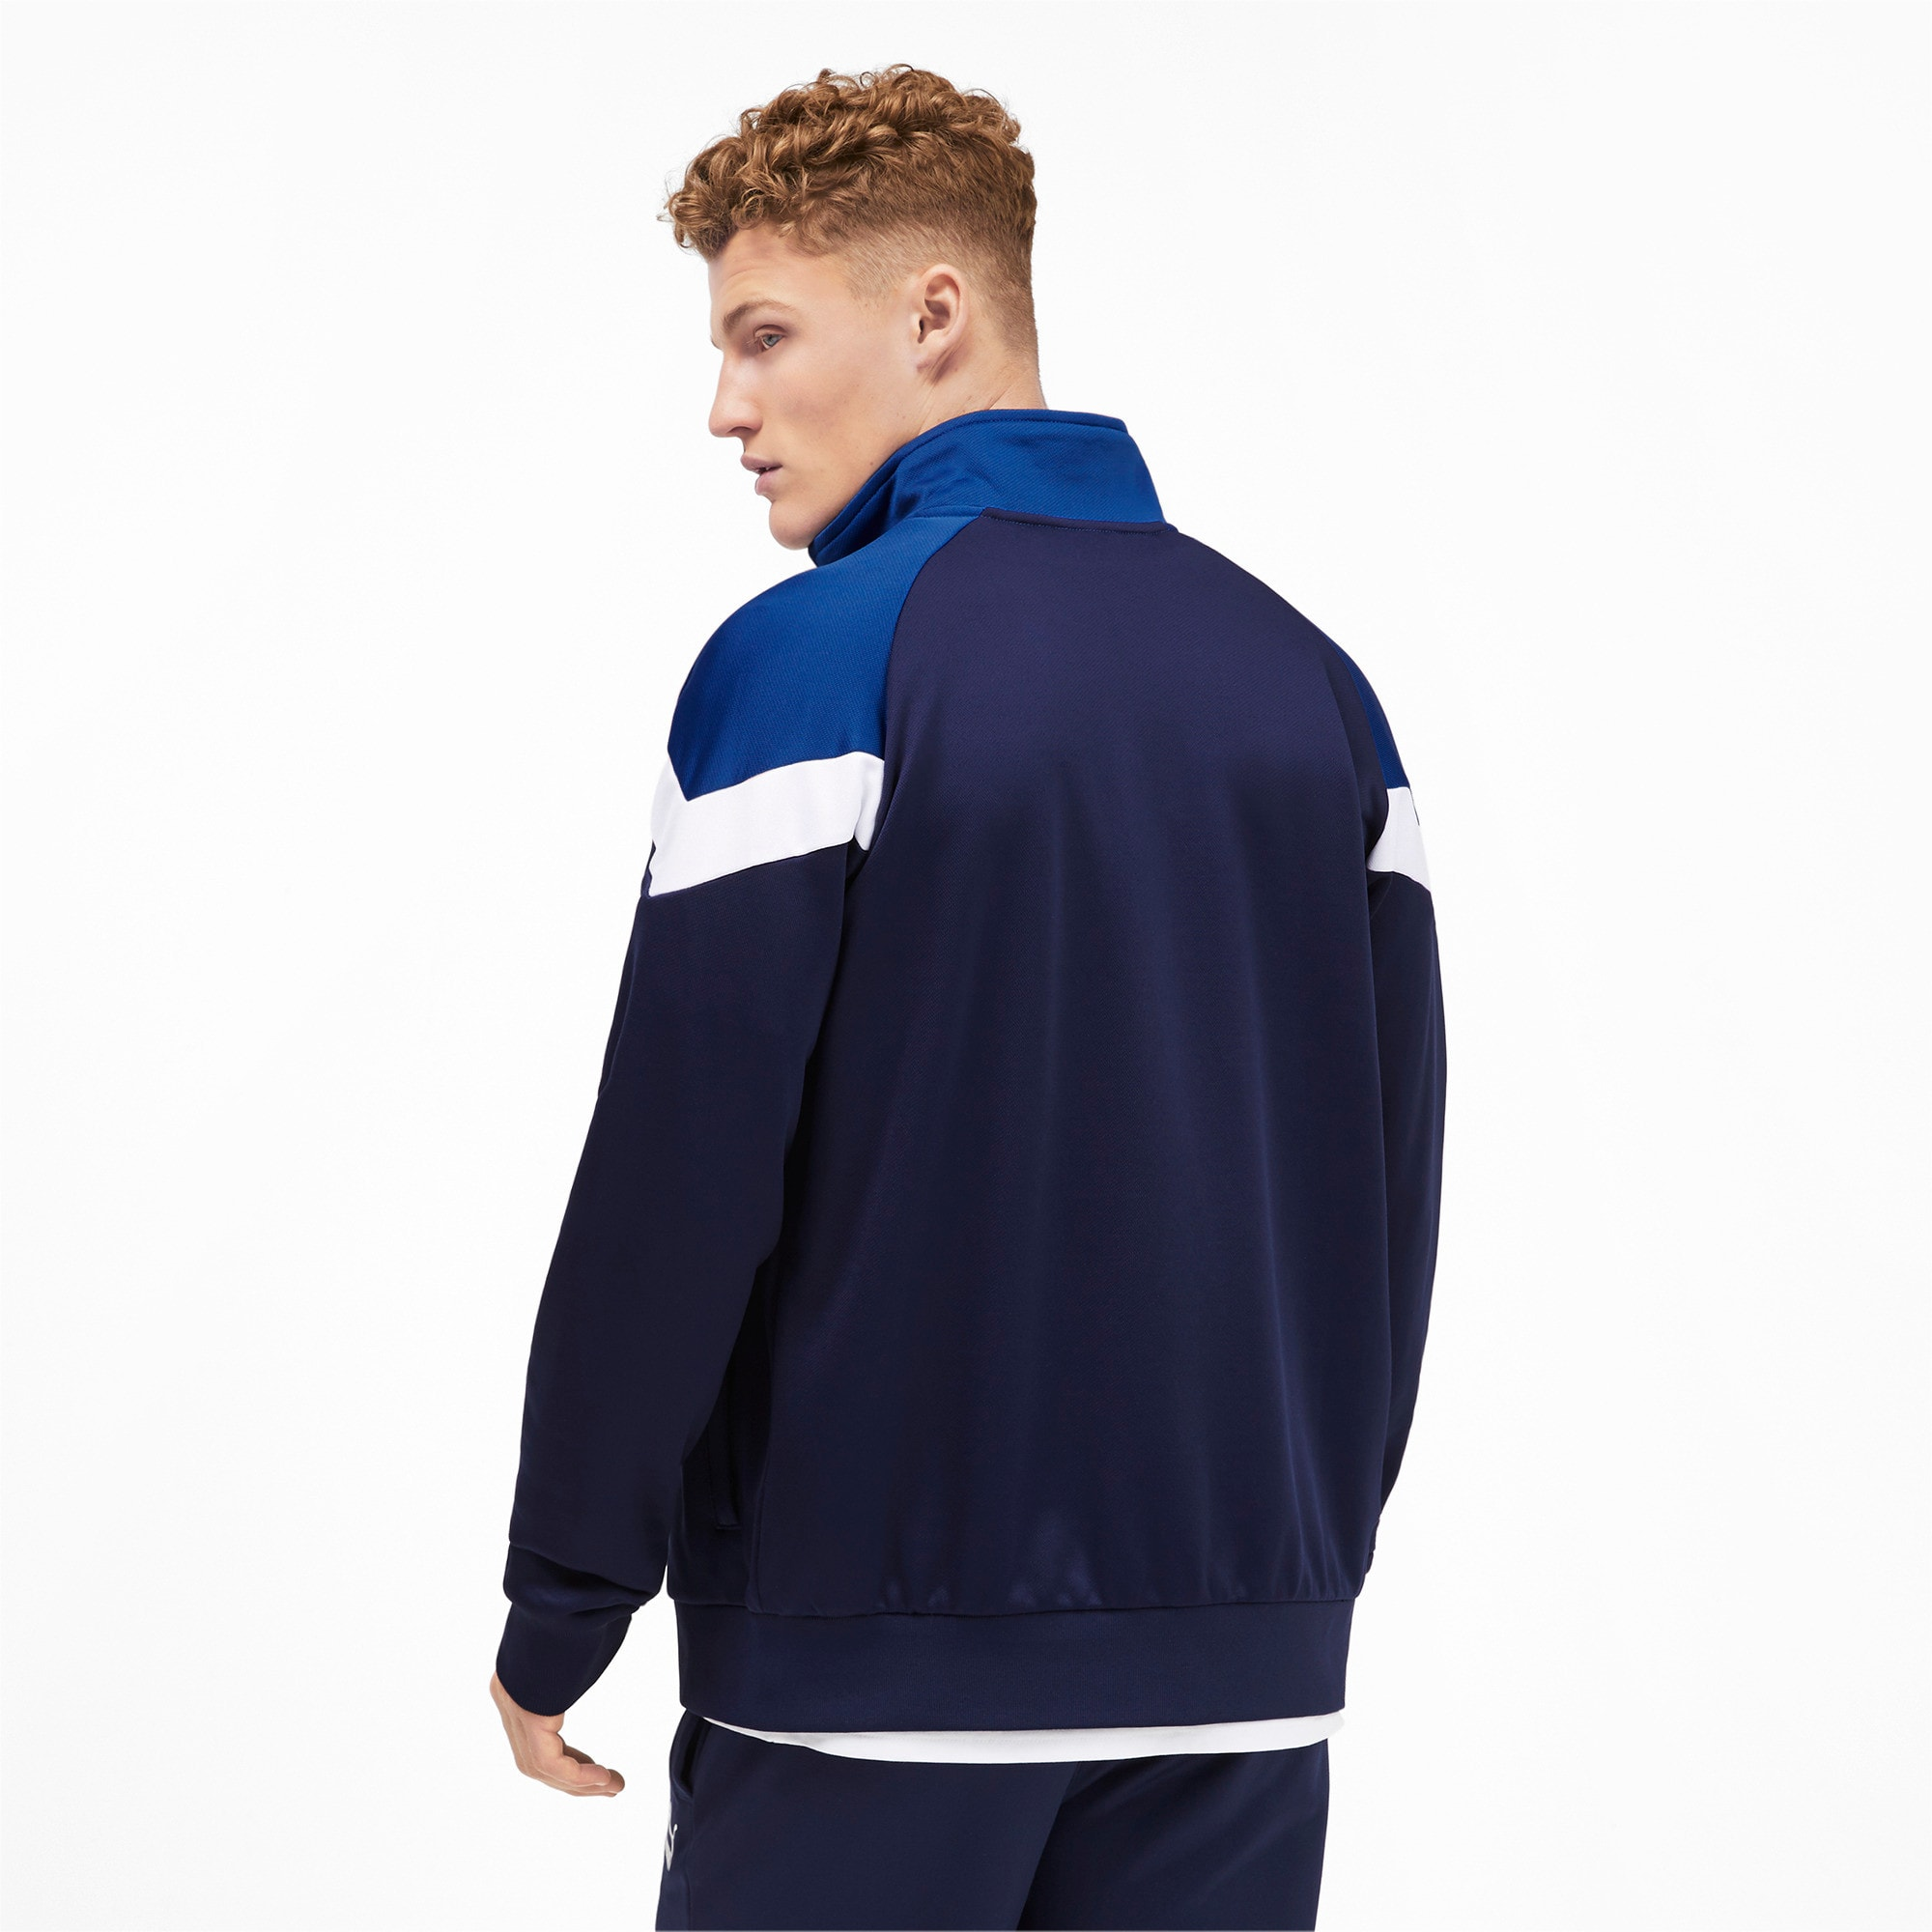 Thumbnail 3 of Iconic MCS Men's Track Jacket, Peacoat, medium